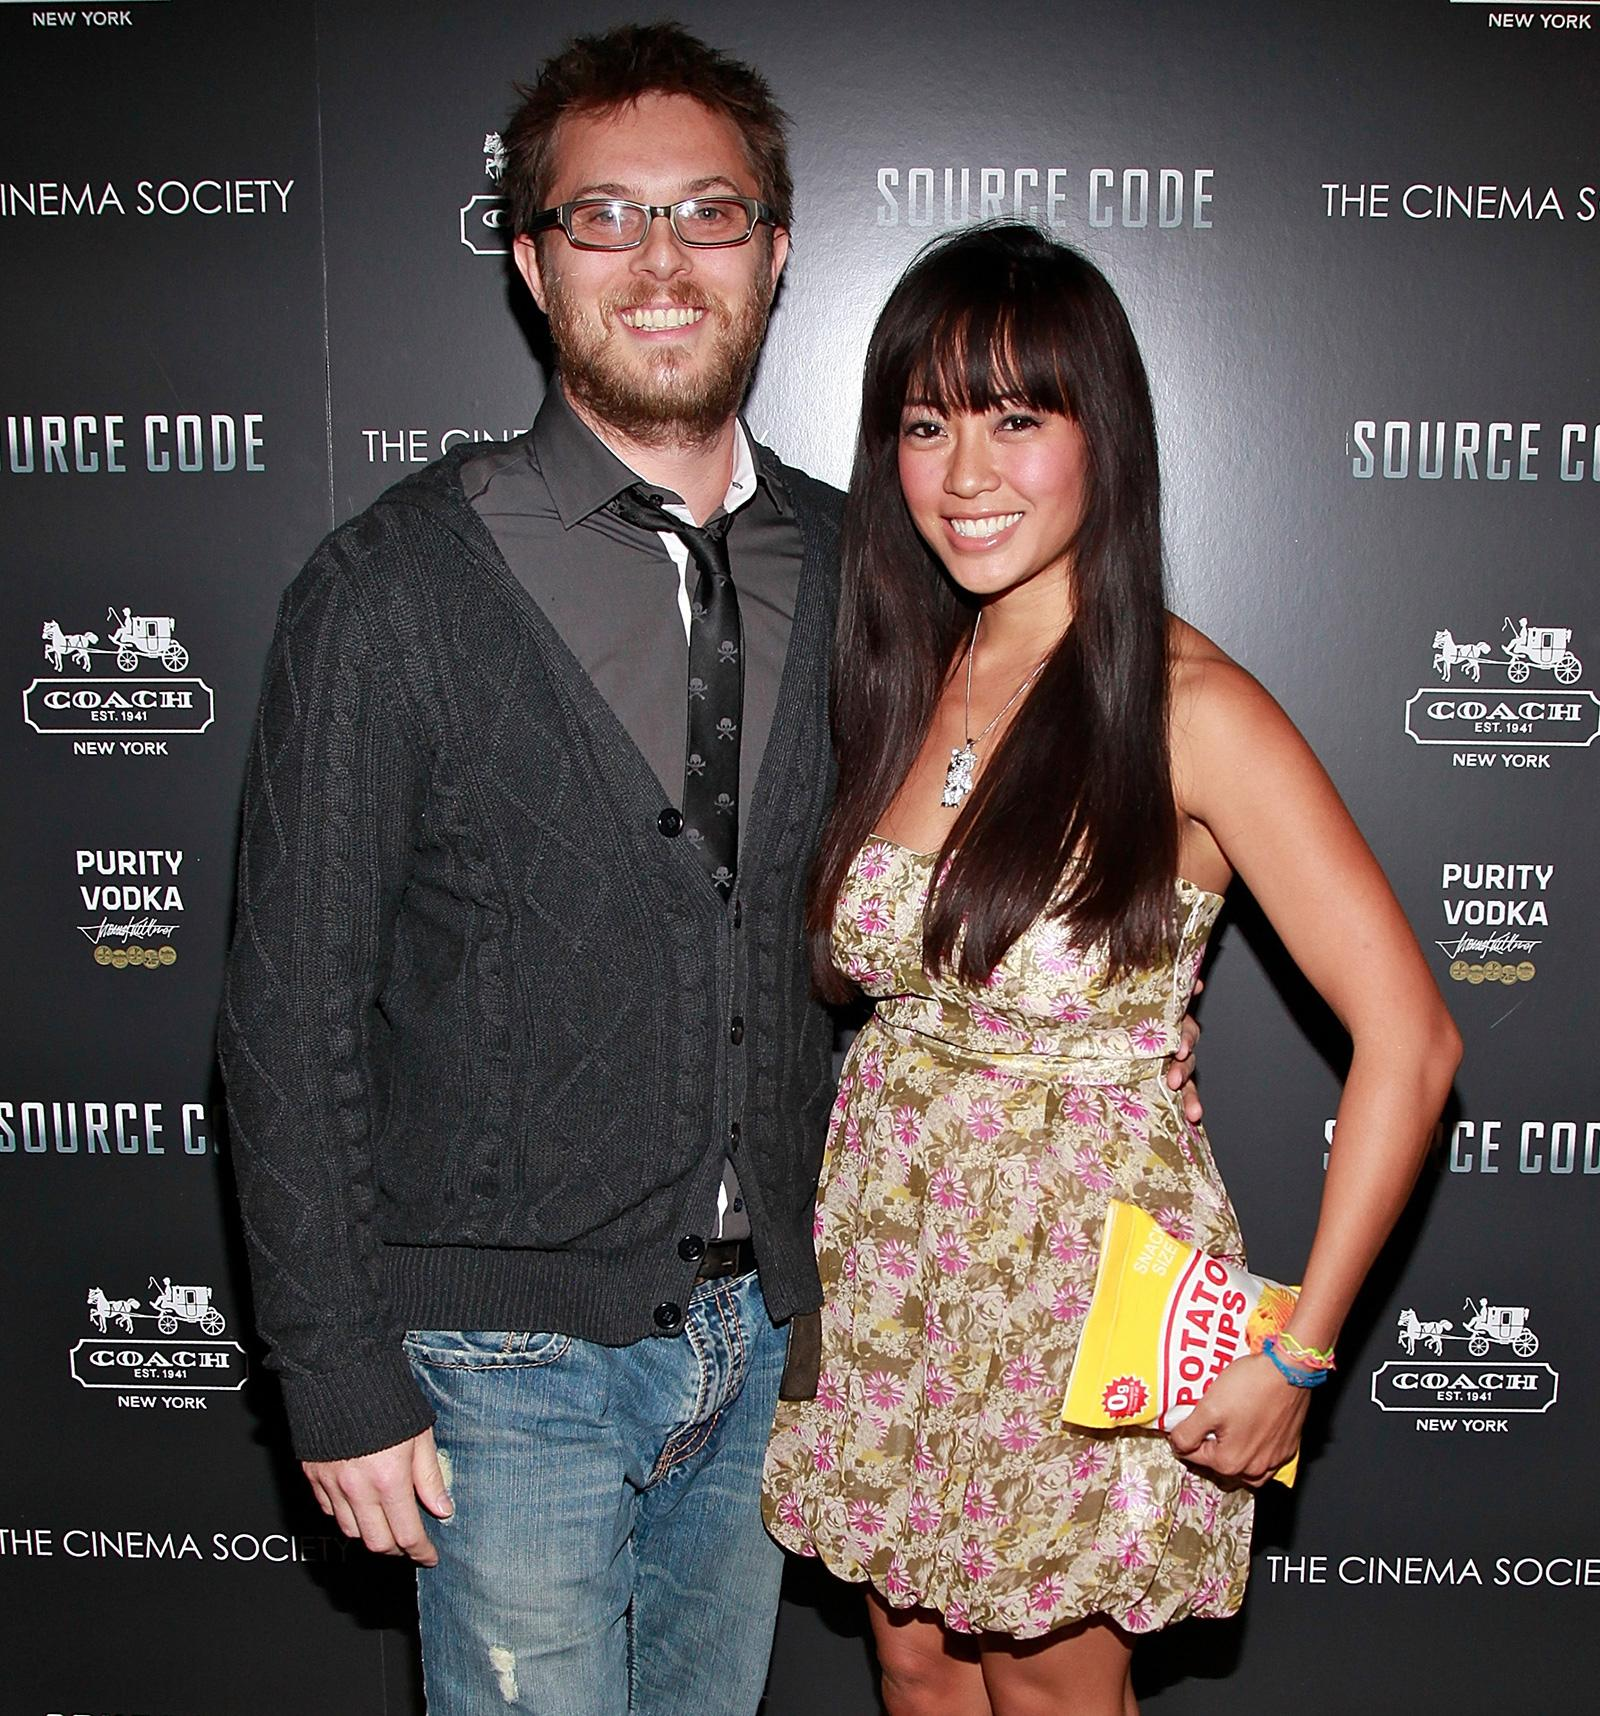 David Bowie's Son, Duncan Jones, Welcomes Baby Boy on Six-Month Anniversary of Singer's Death